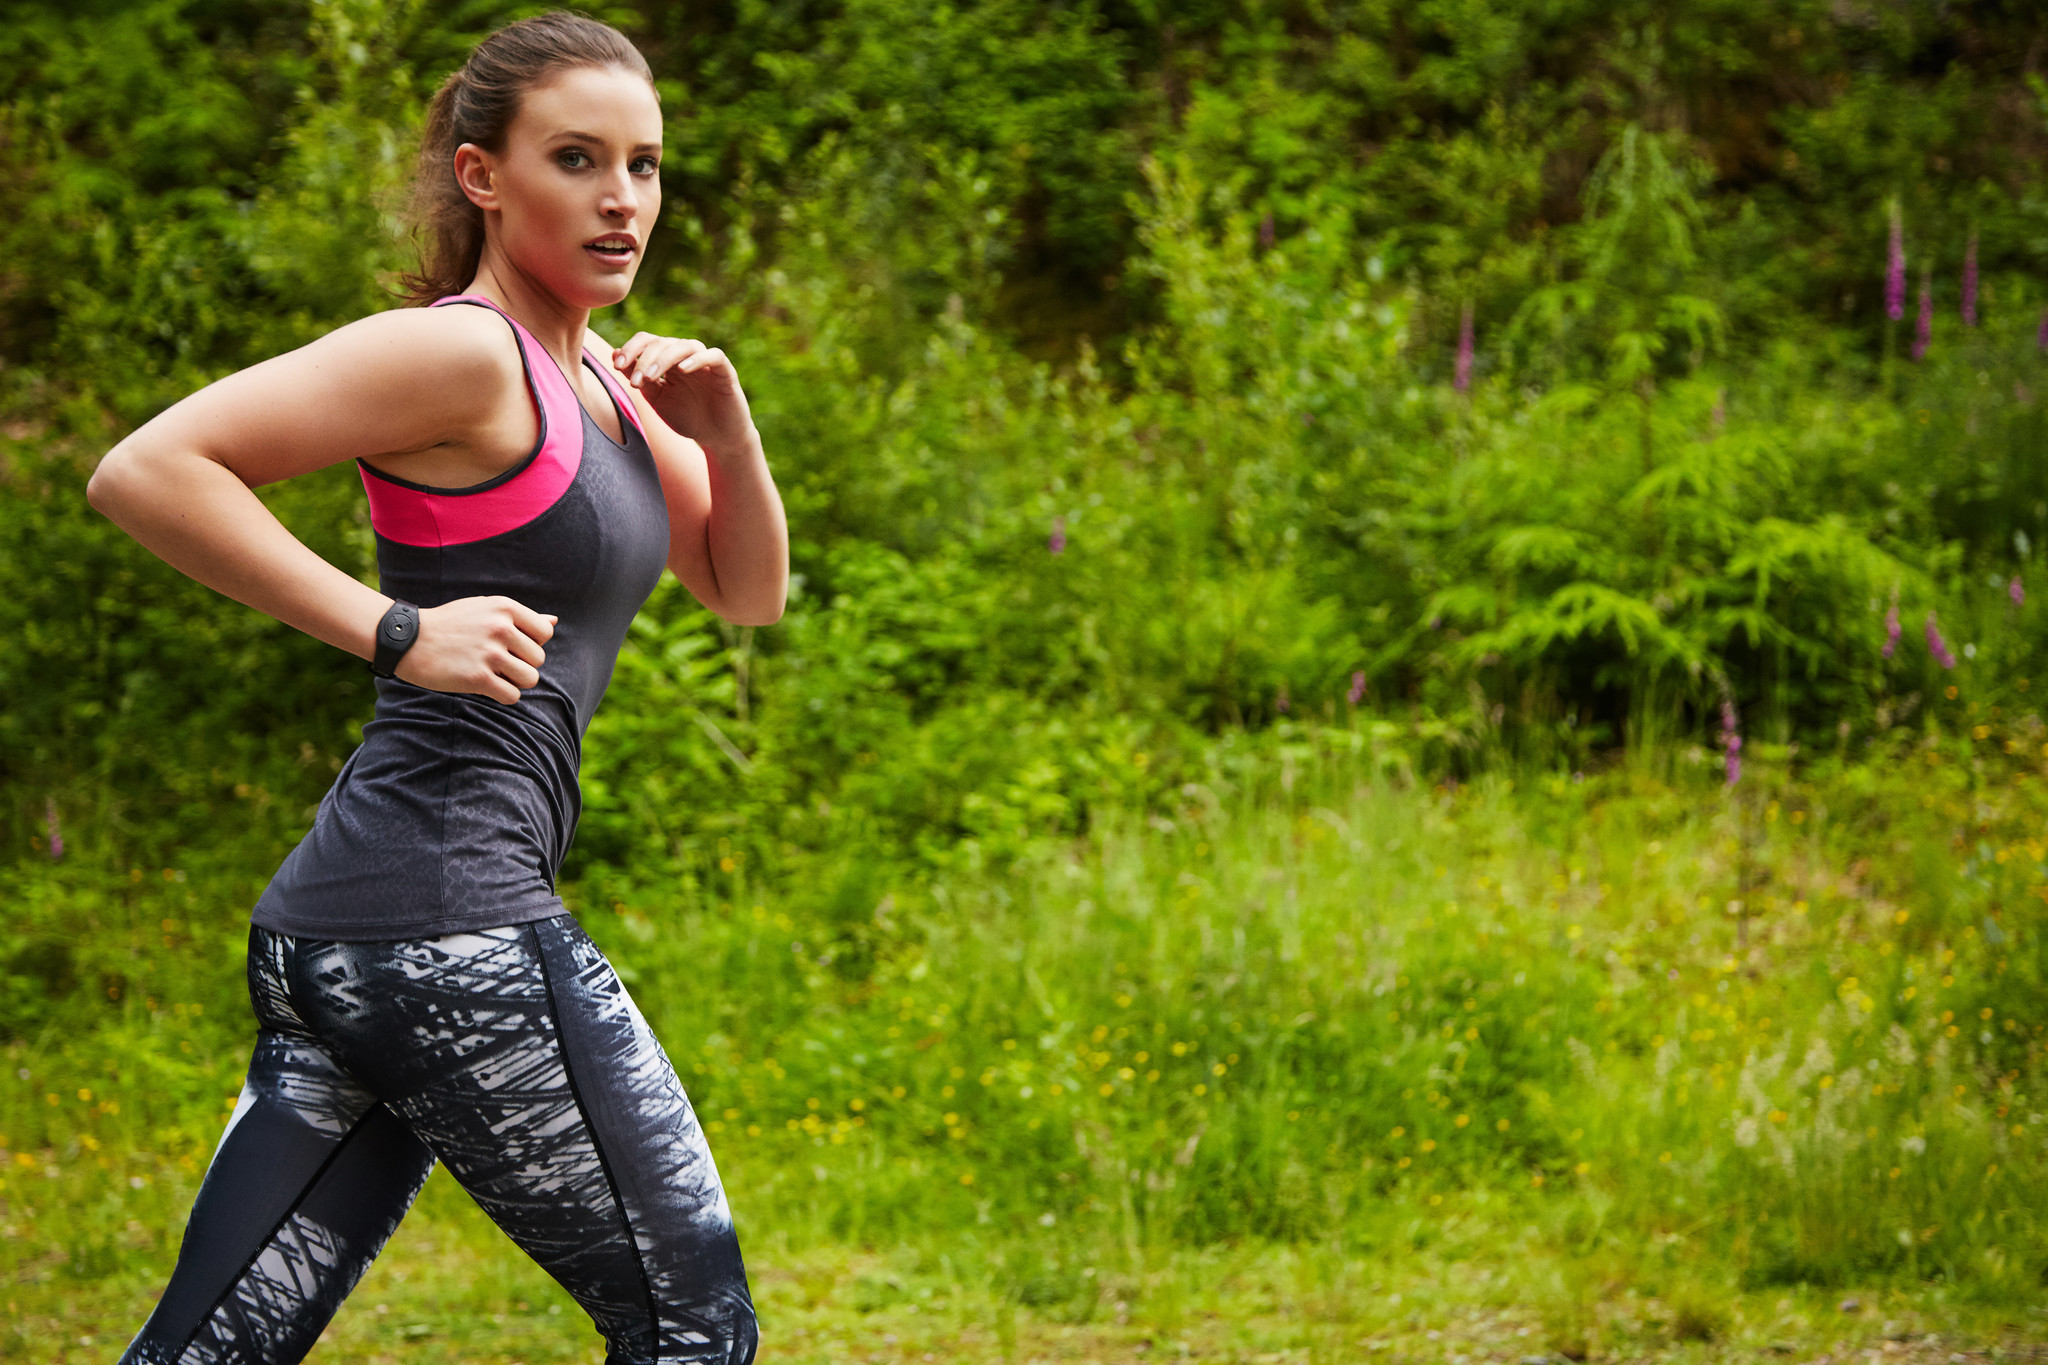 9 common-sense safety tips for women who run — and everyone else